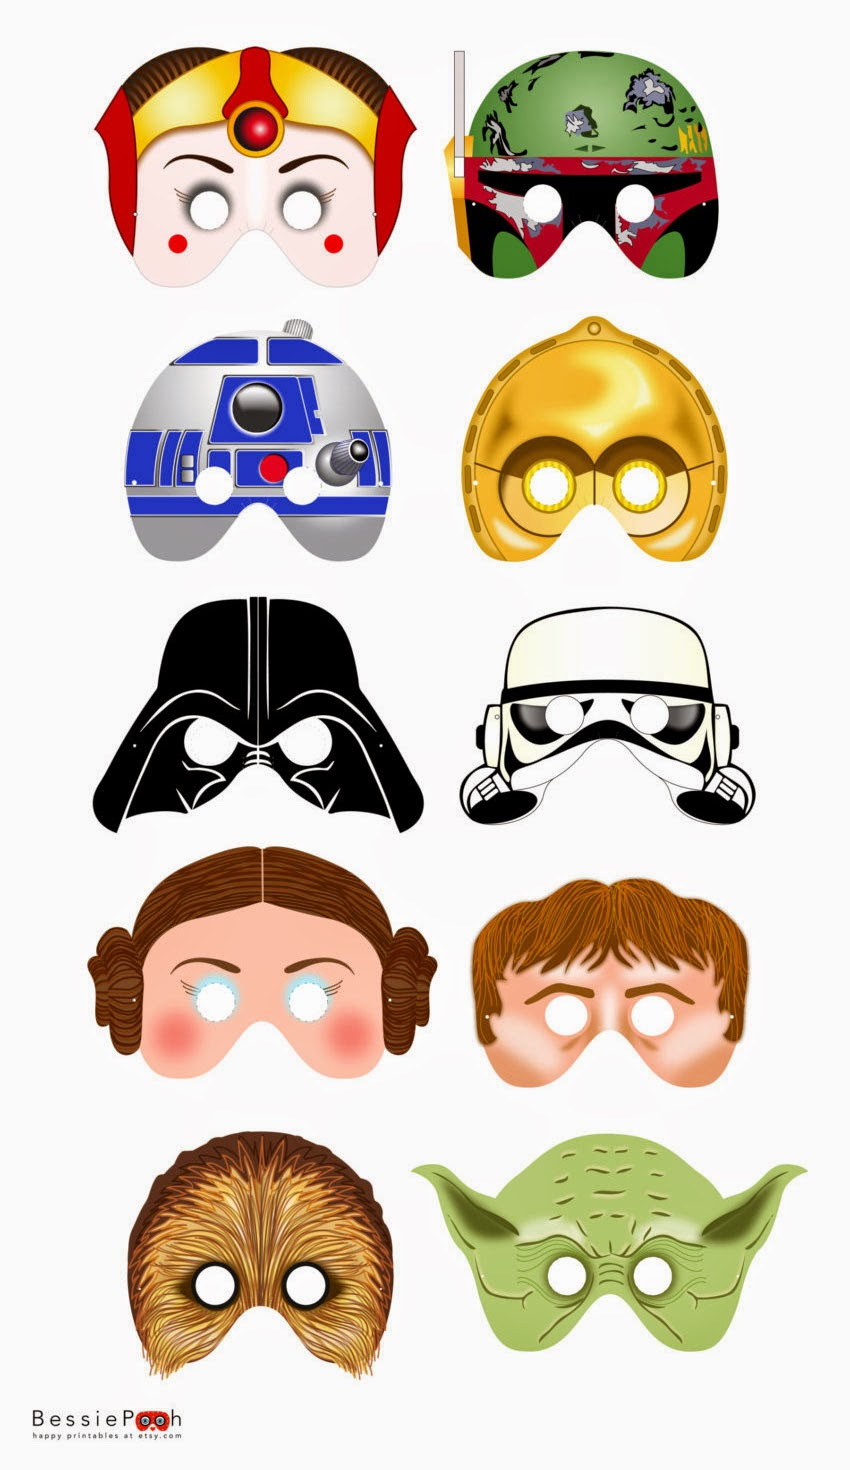 photograph regarding Free Printable Masks called Star Wars Cost-free Printable Masks. - Oh My Fiesta! in just english